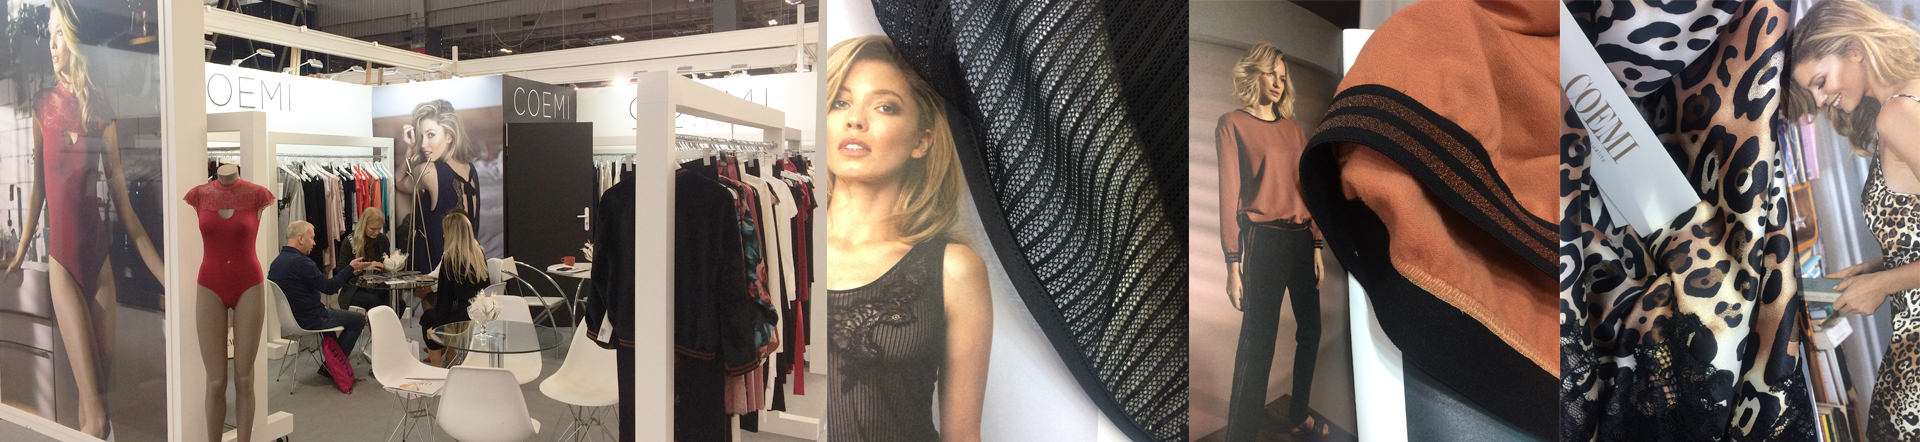 Salon International de La Lingerie - Pars 2019 - COEMI